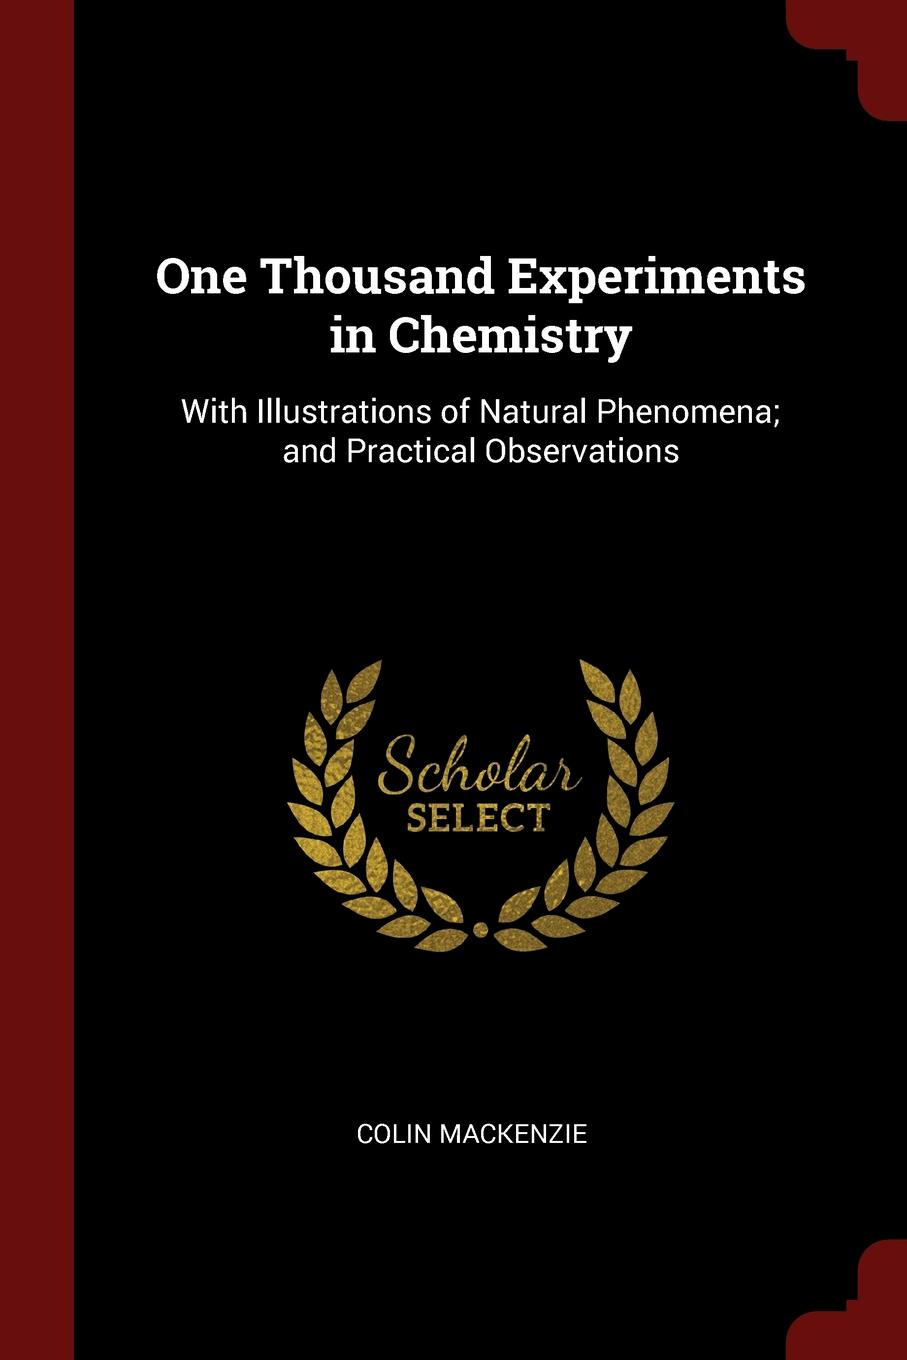 One Thousand Experiments in Chemistry. With Illustrations of Natural Phenomena; and Practical Observations